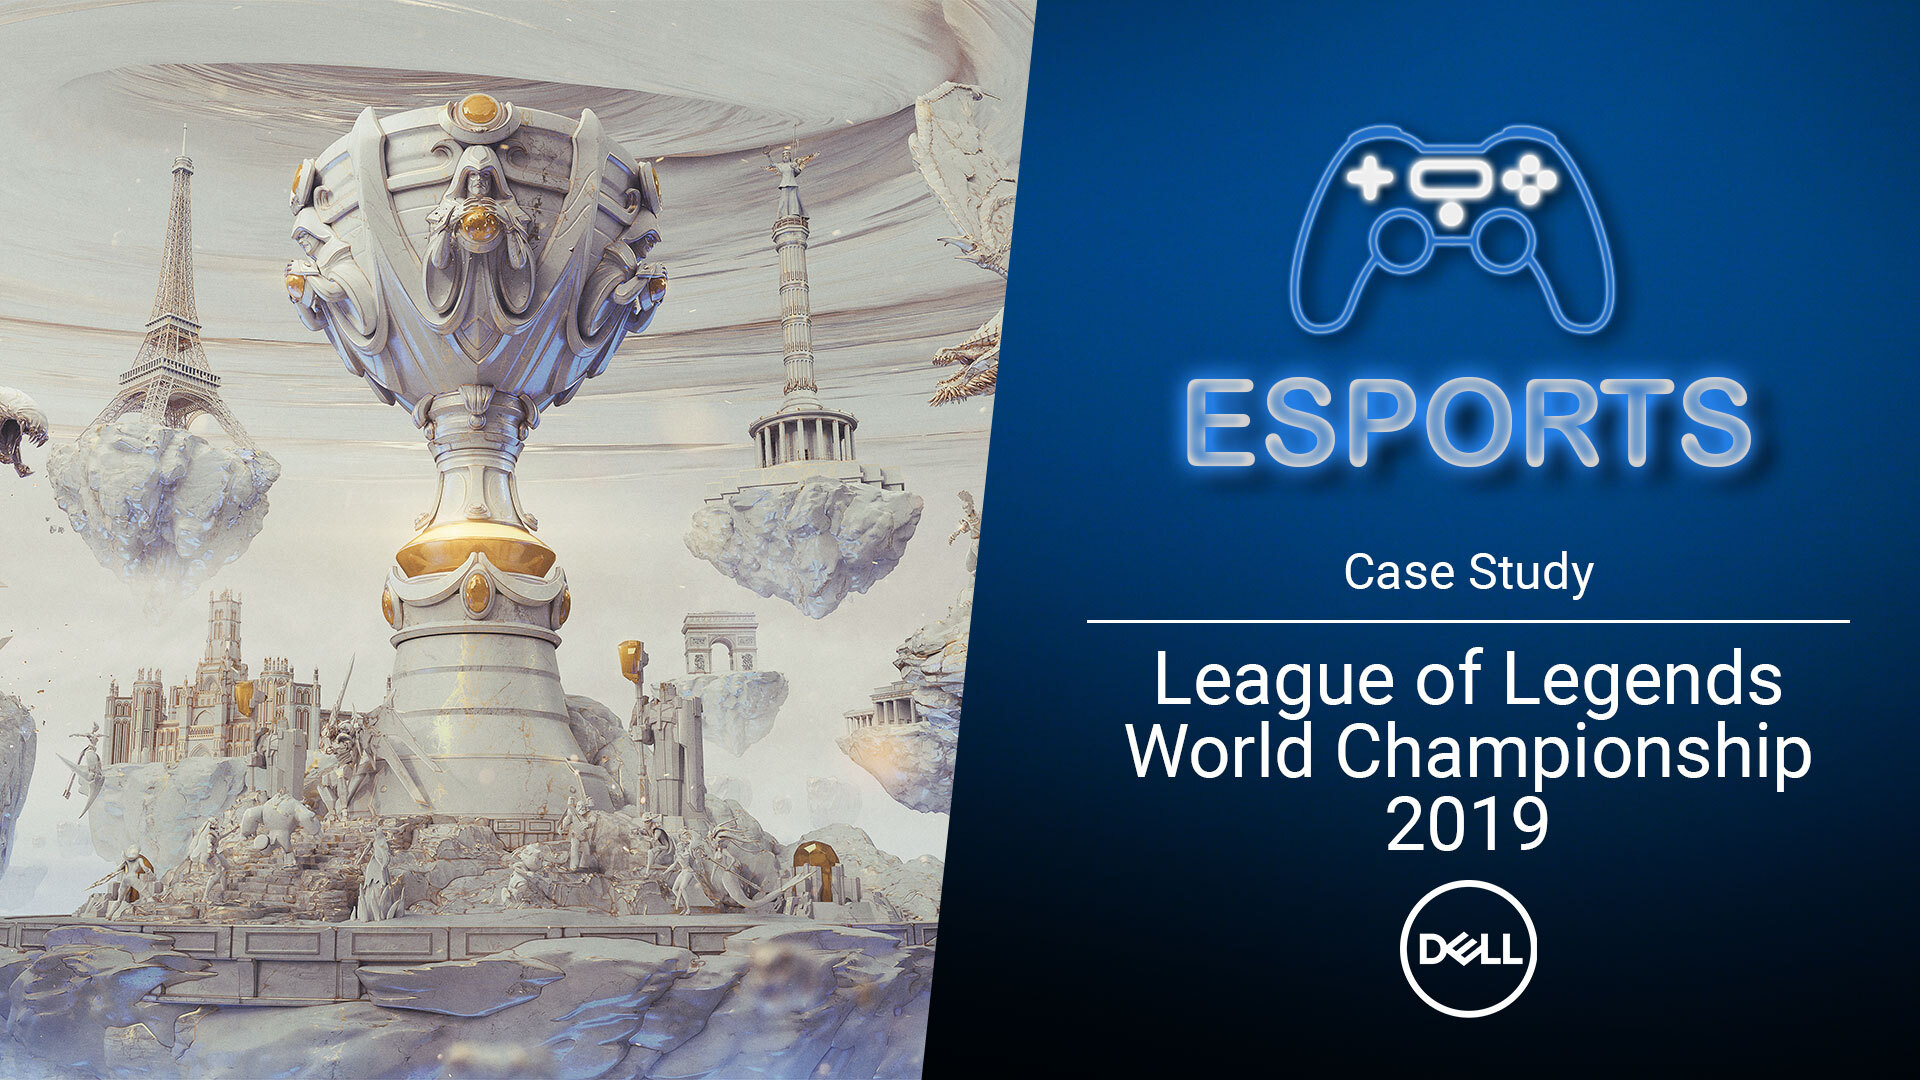 League of Legends: World Championship